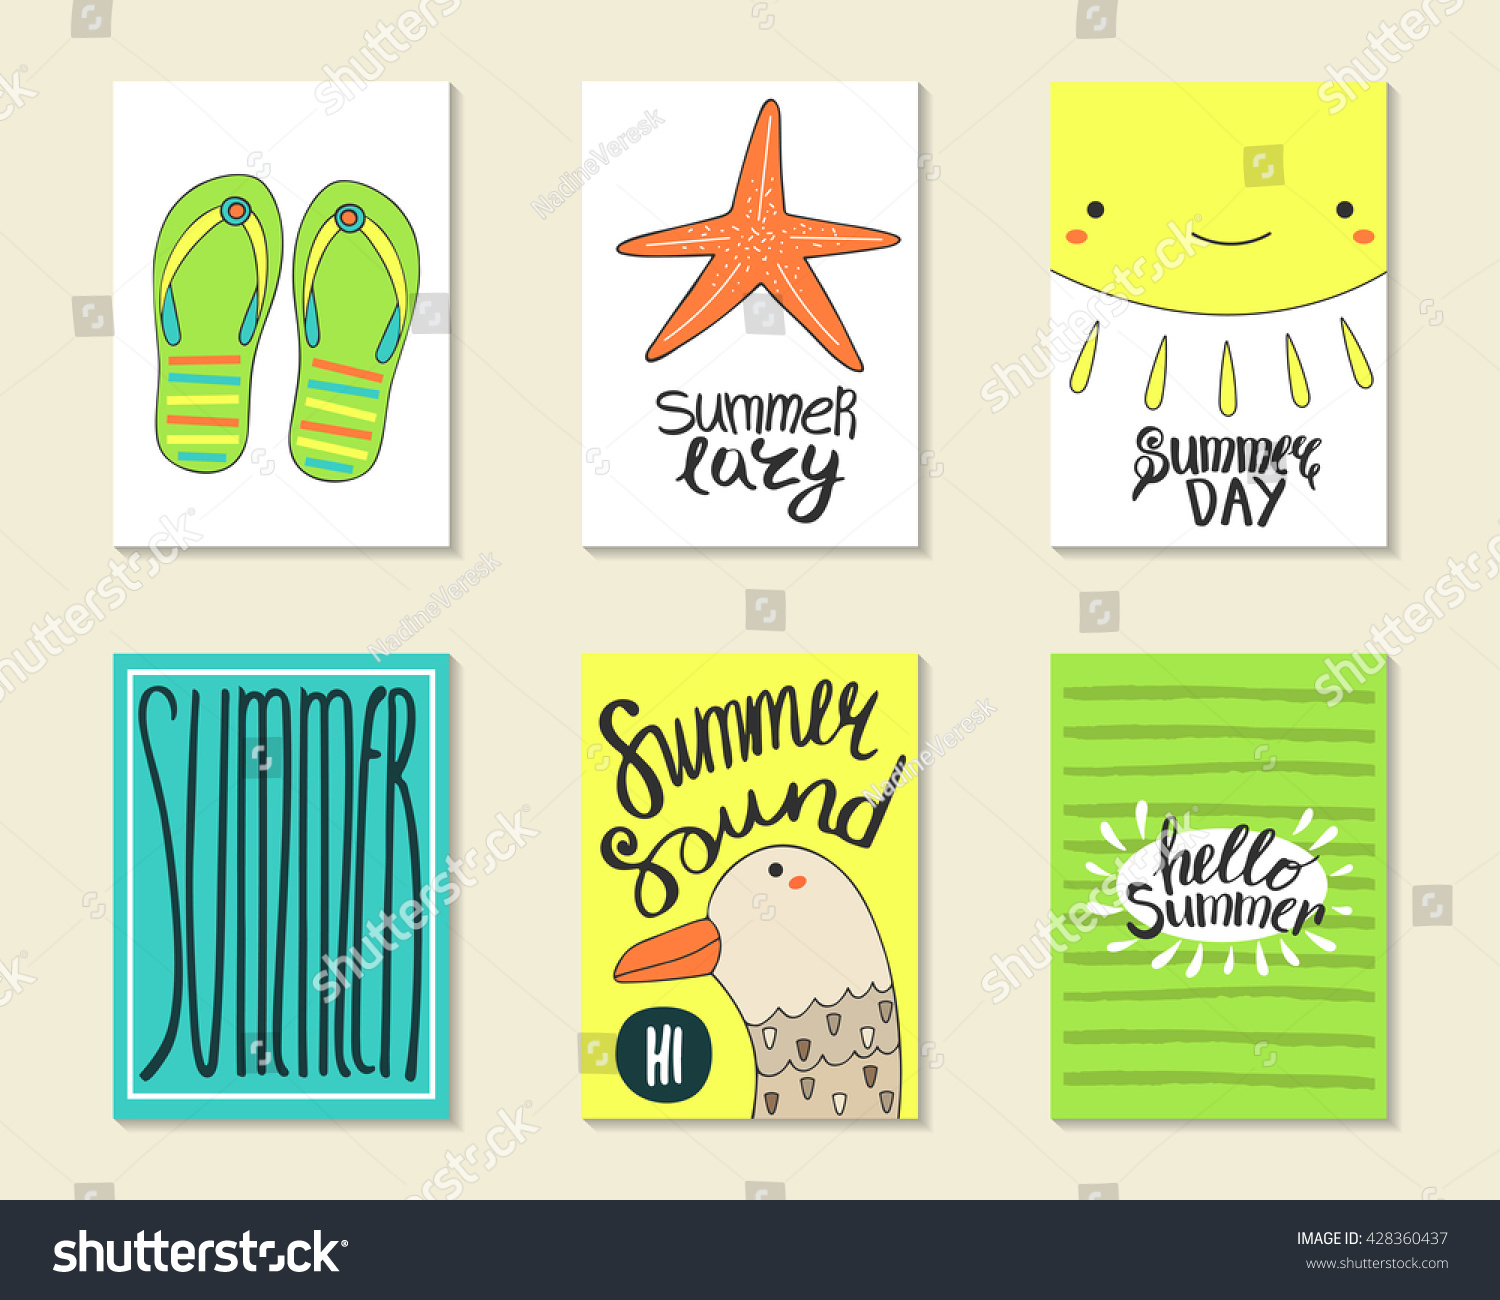 Cute Doodle Summer Party Cards Brochures Invitations With Flip Flops Sea Star